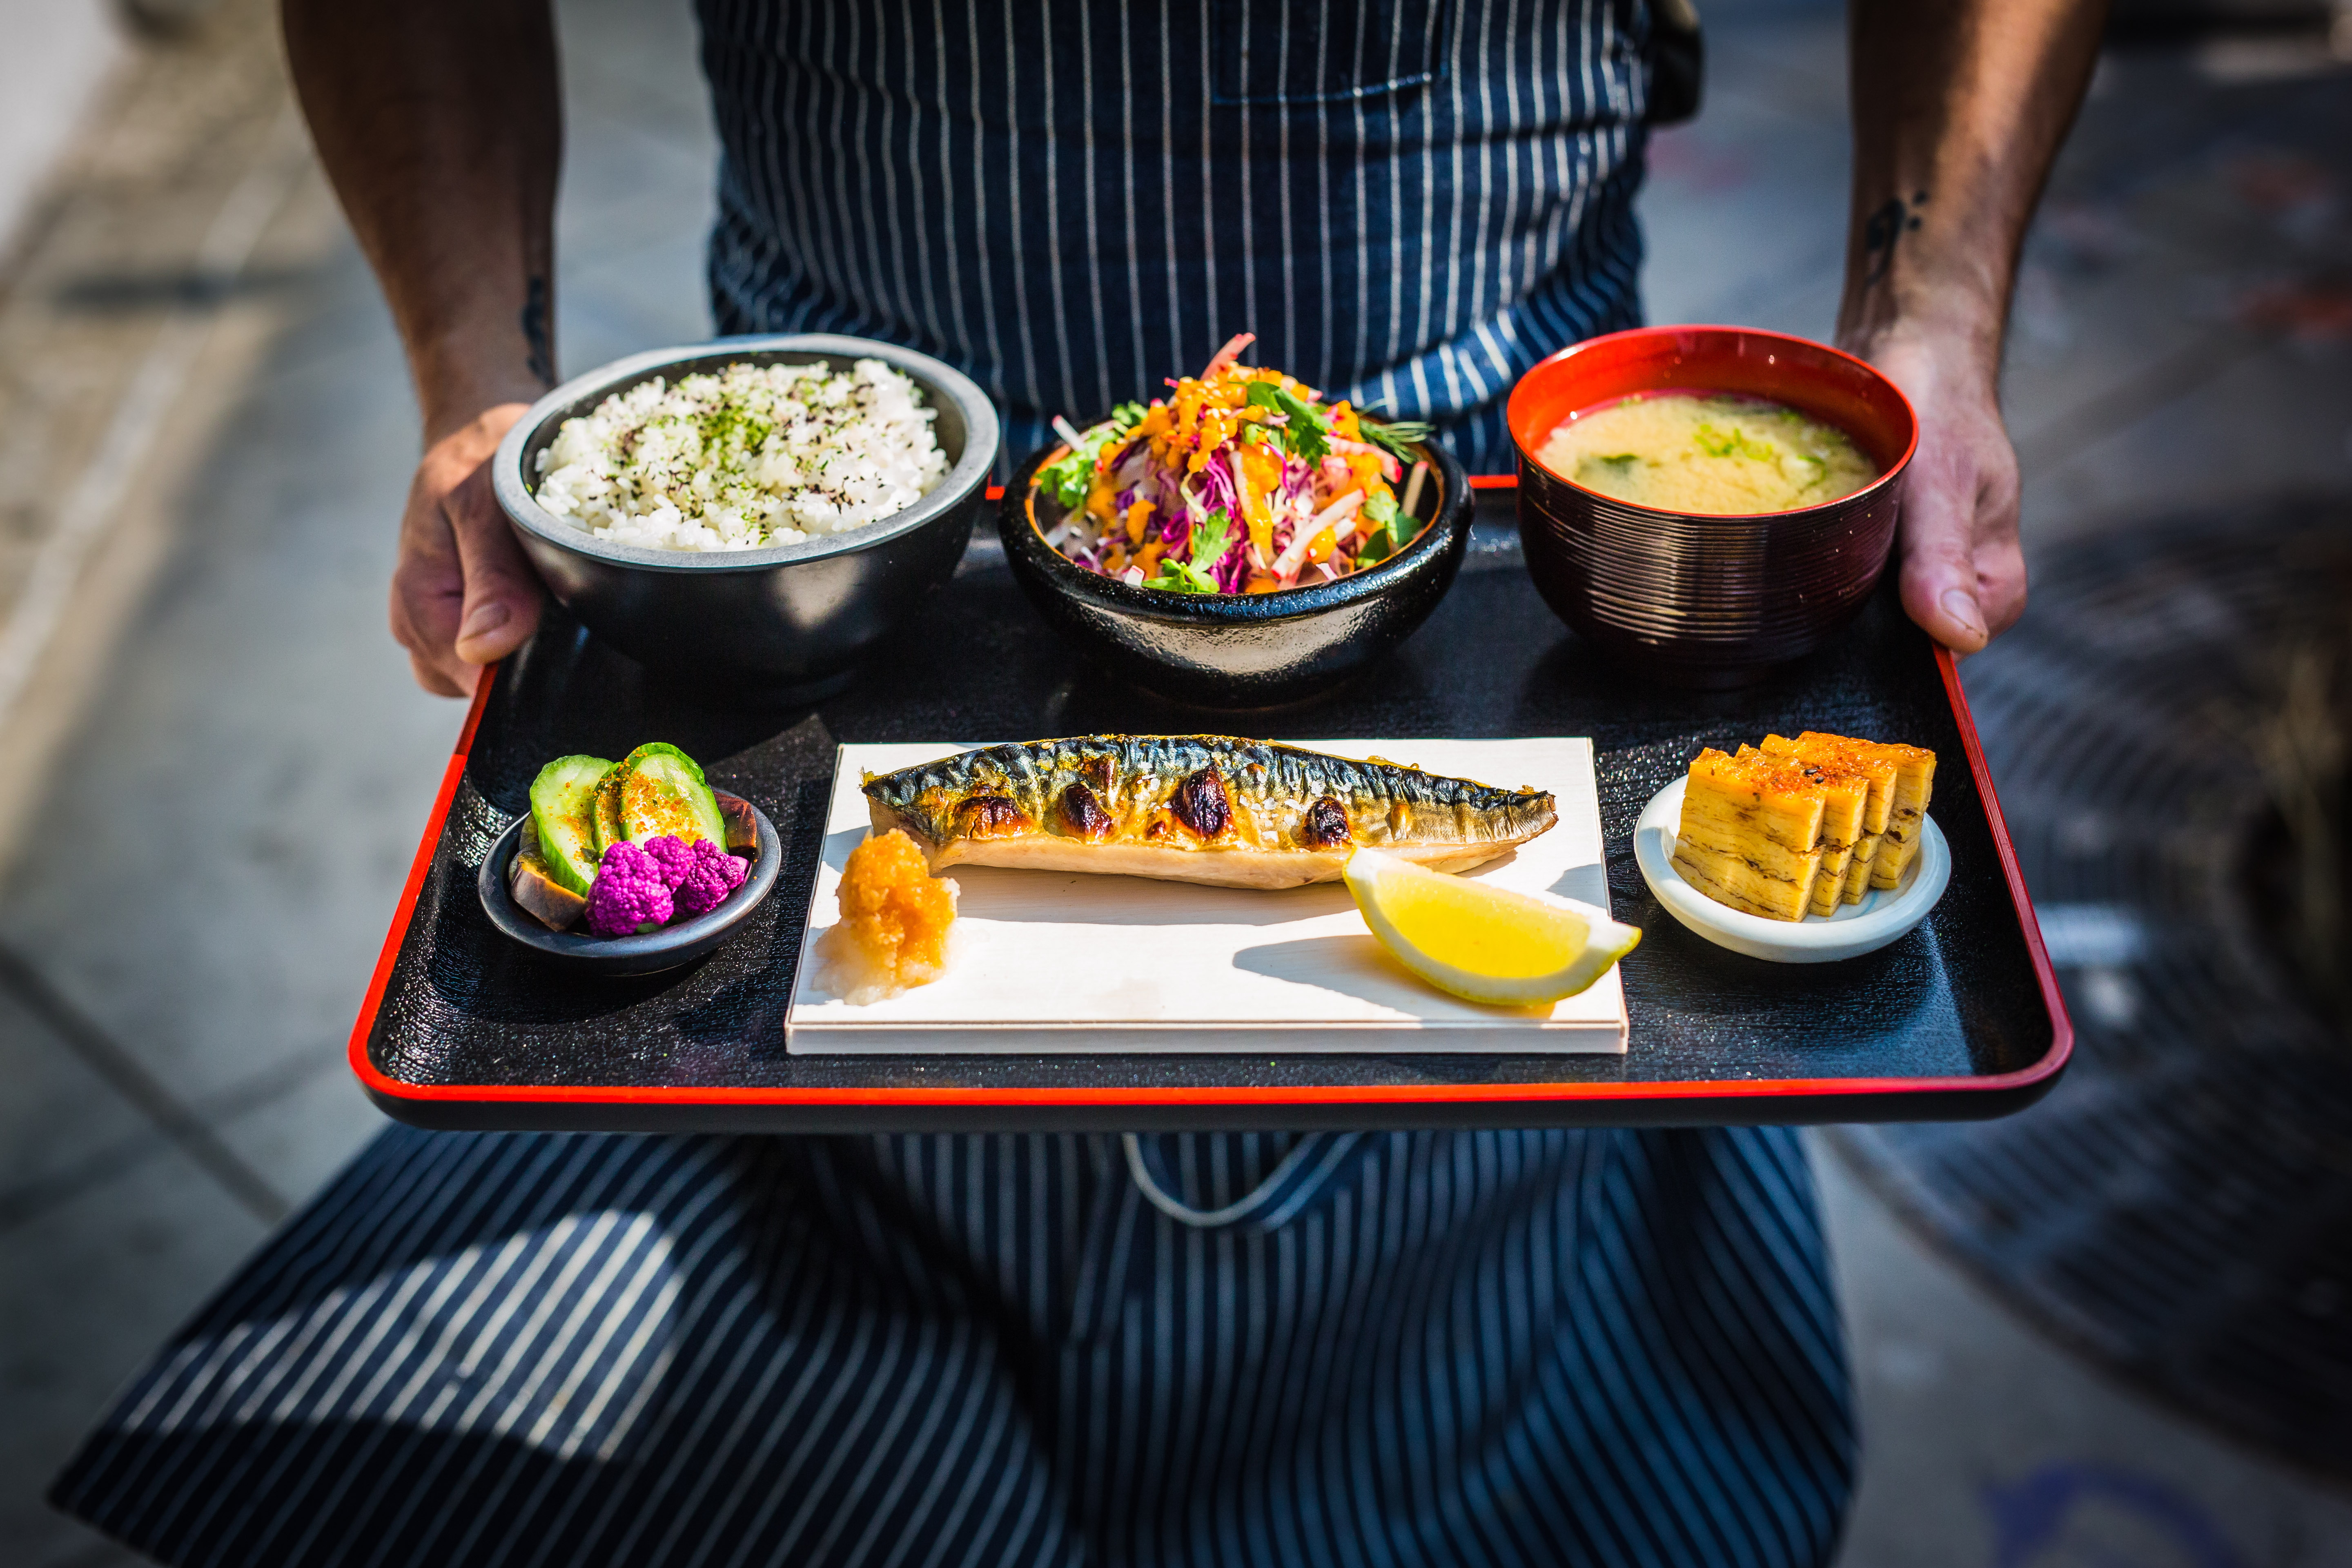 An overhead shot of a tray of Japanese food, including fried fish, held in hands.